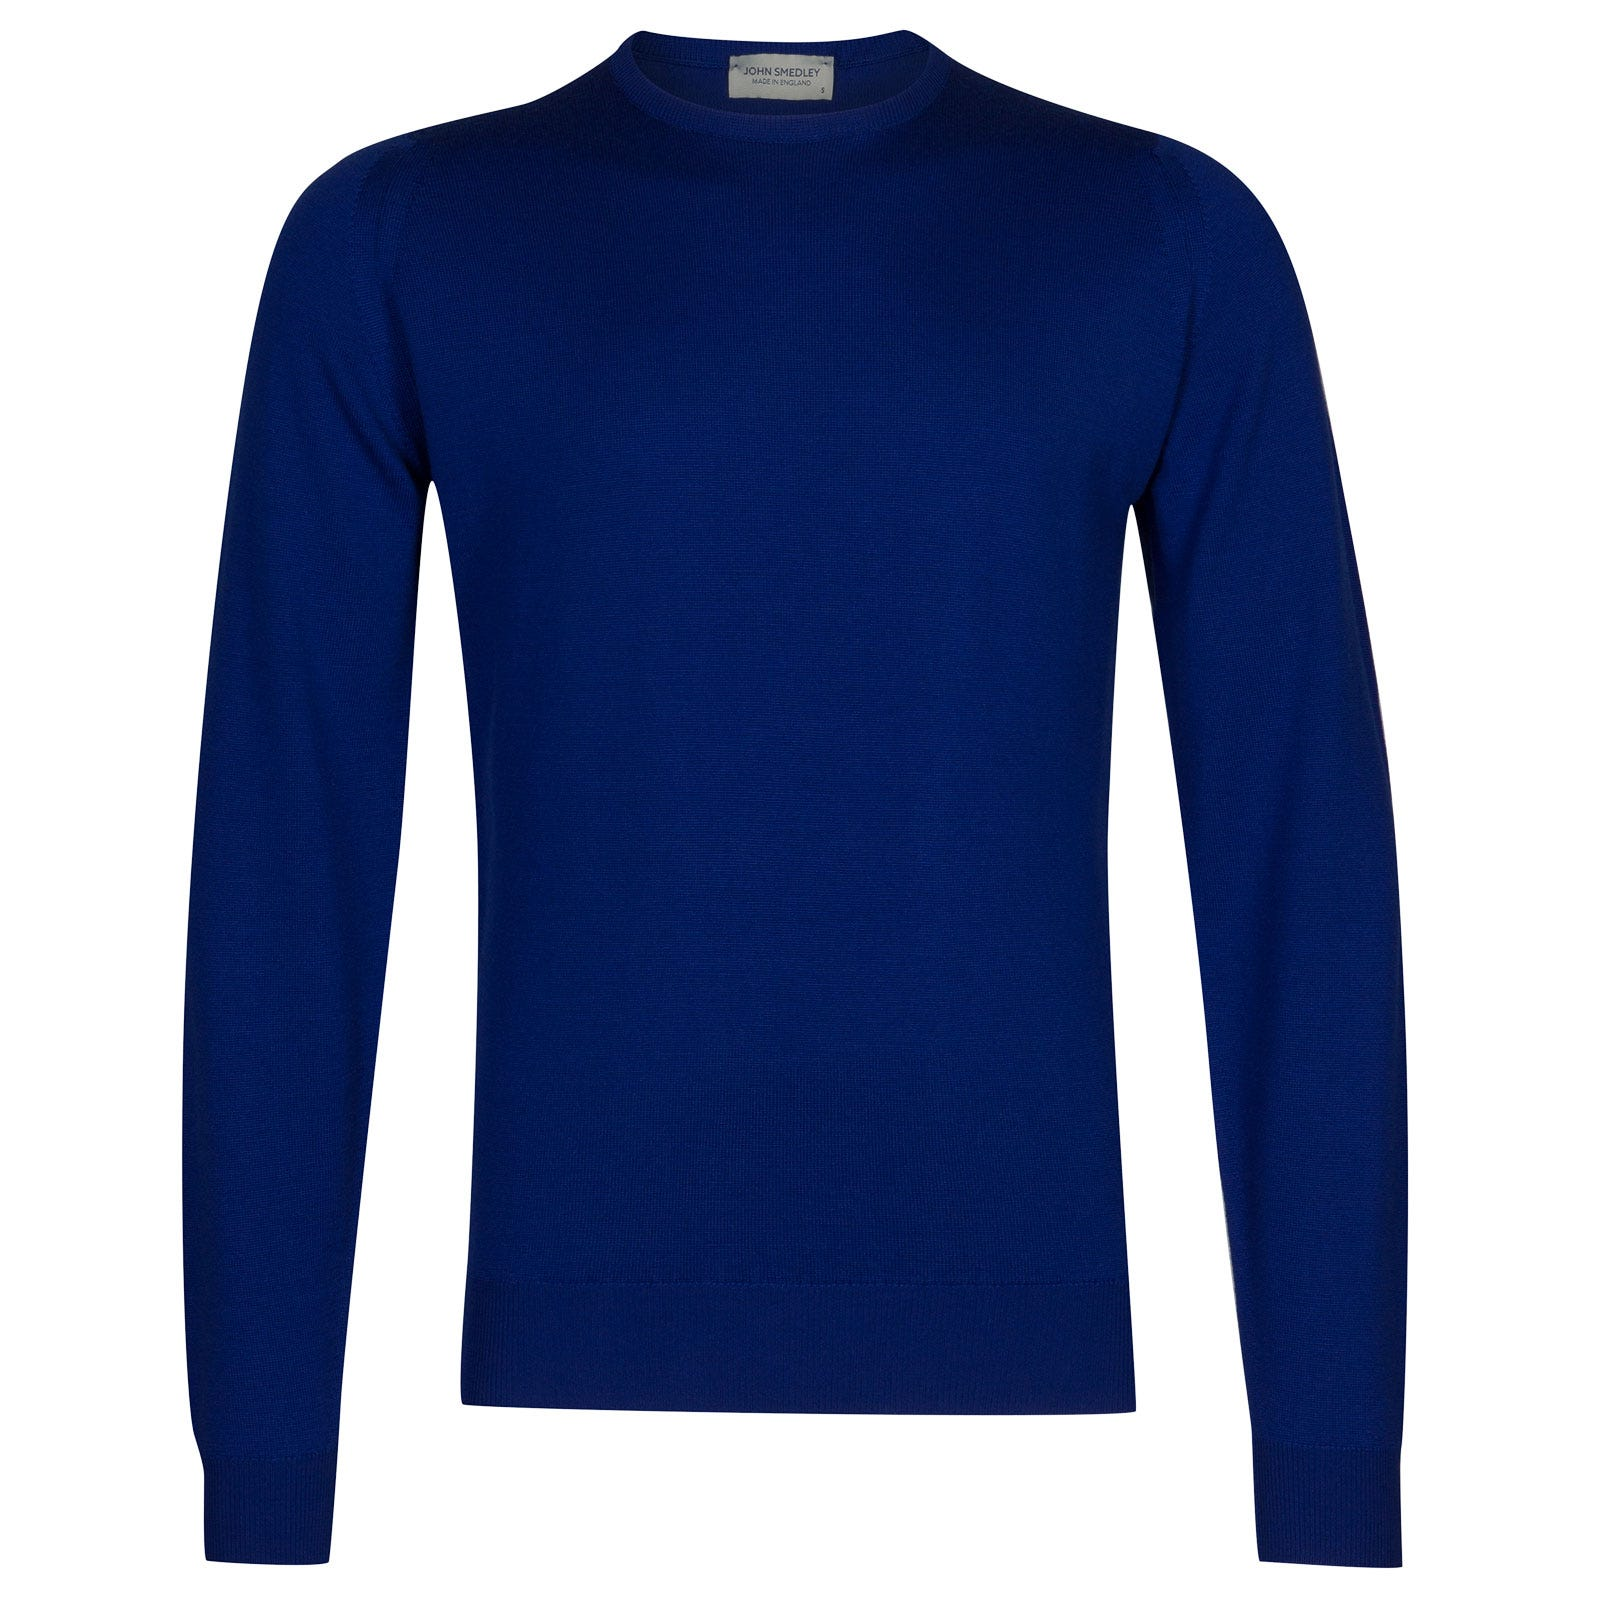 John Smedley farhill Merino Wool Pullover in Coniston Blue-S